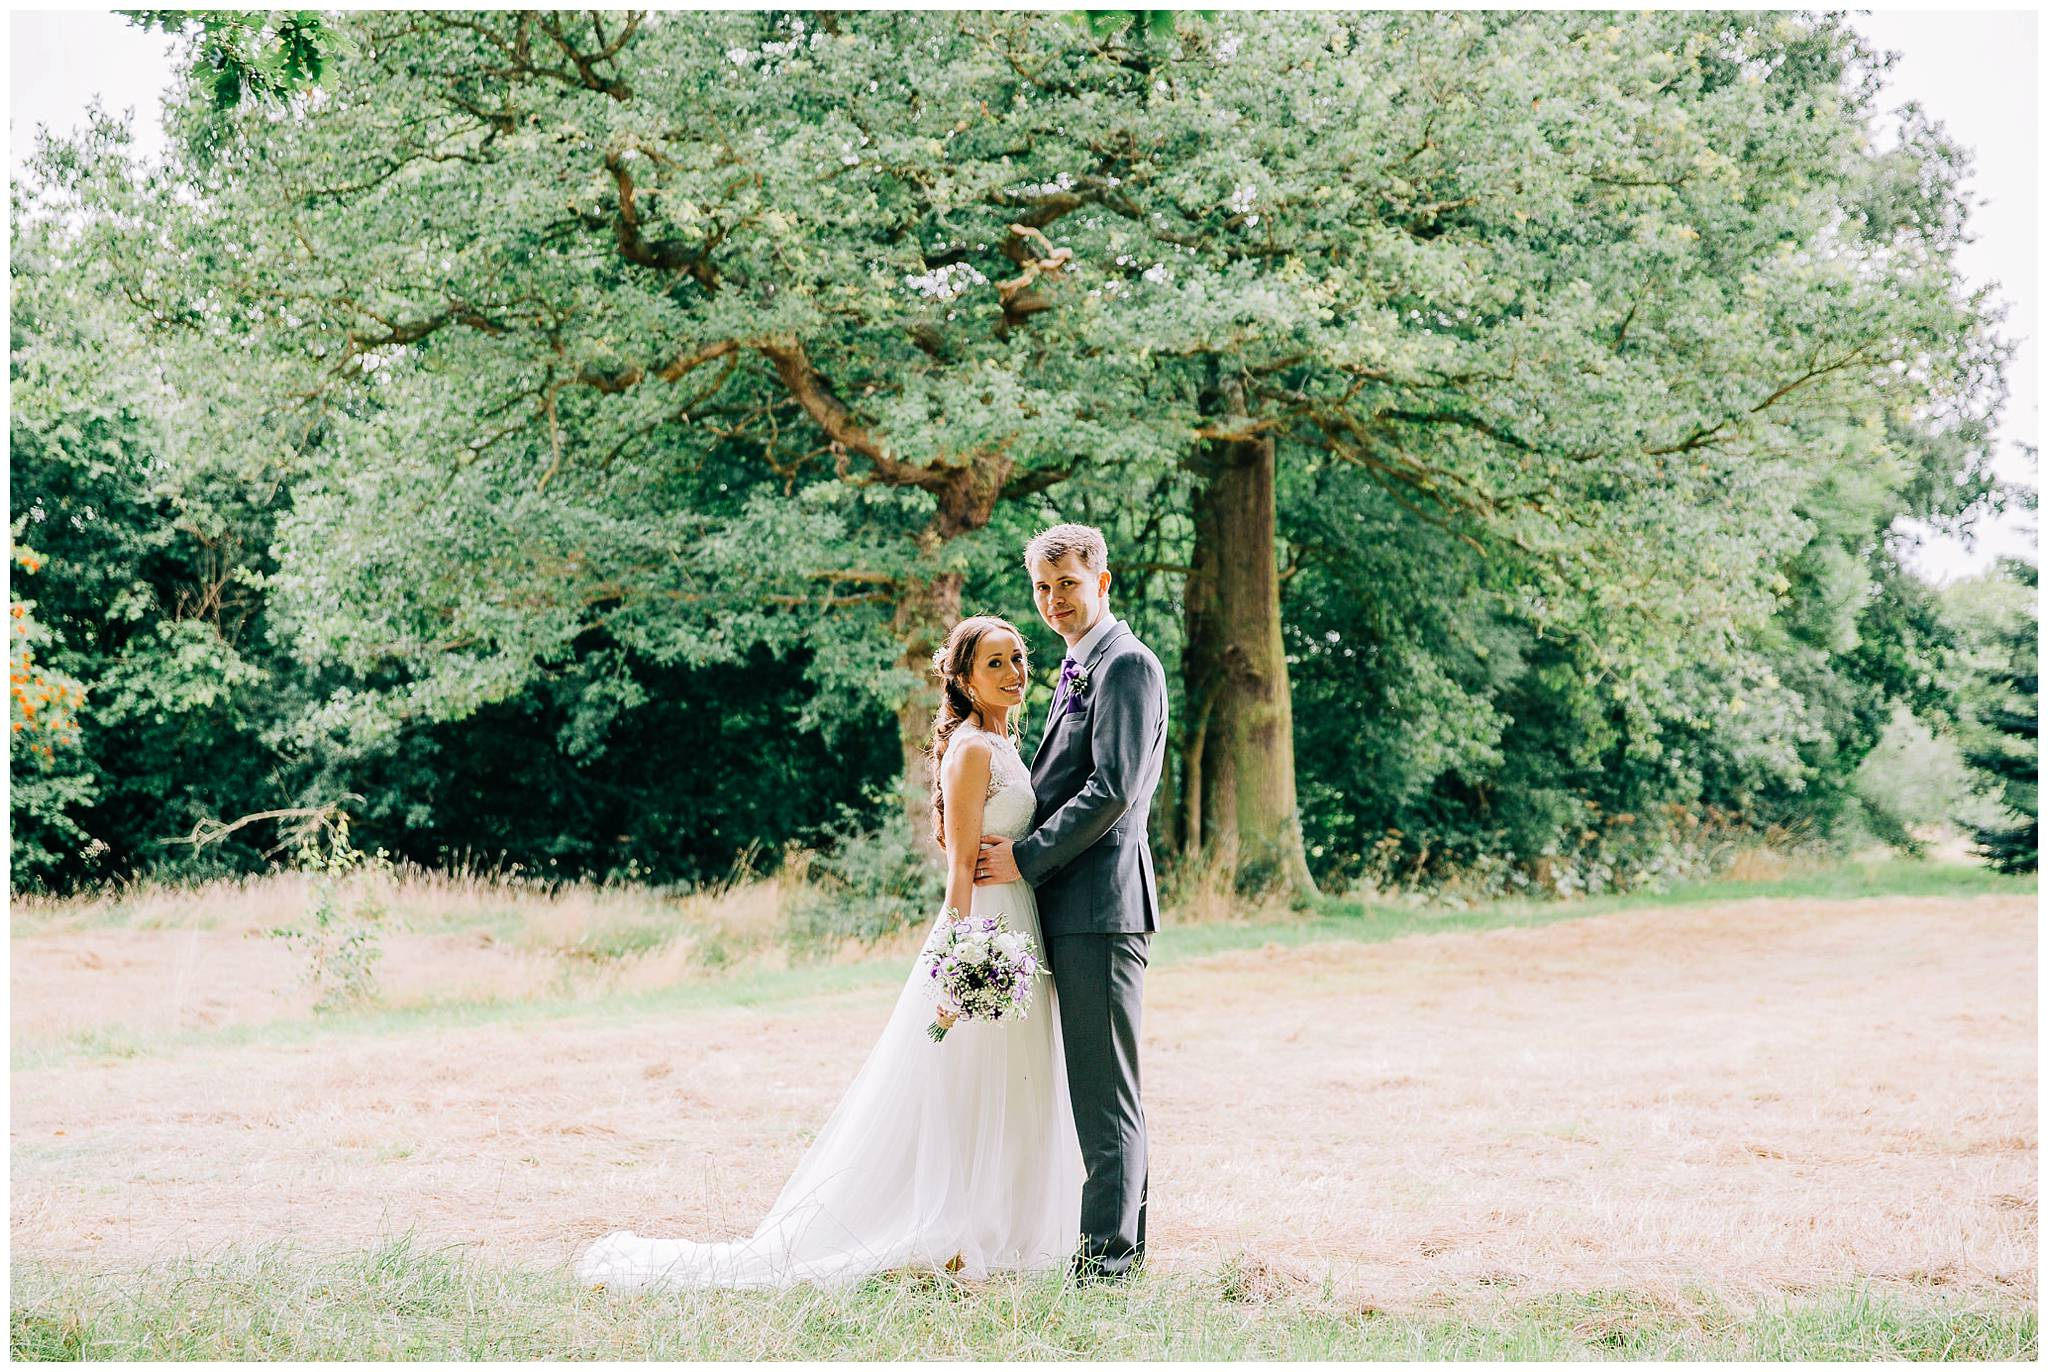 The Oak Tree at Peover - Cheshire Wedding Photographer-61.jpg